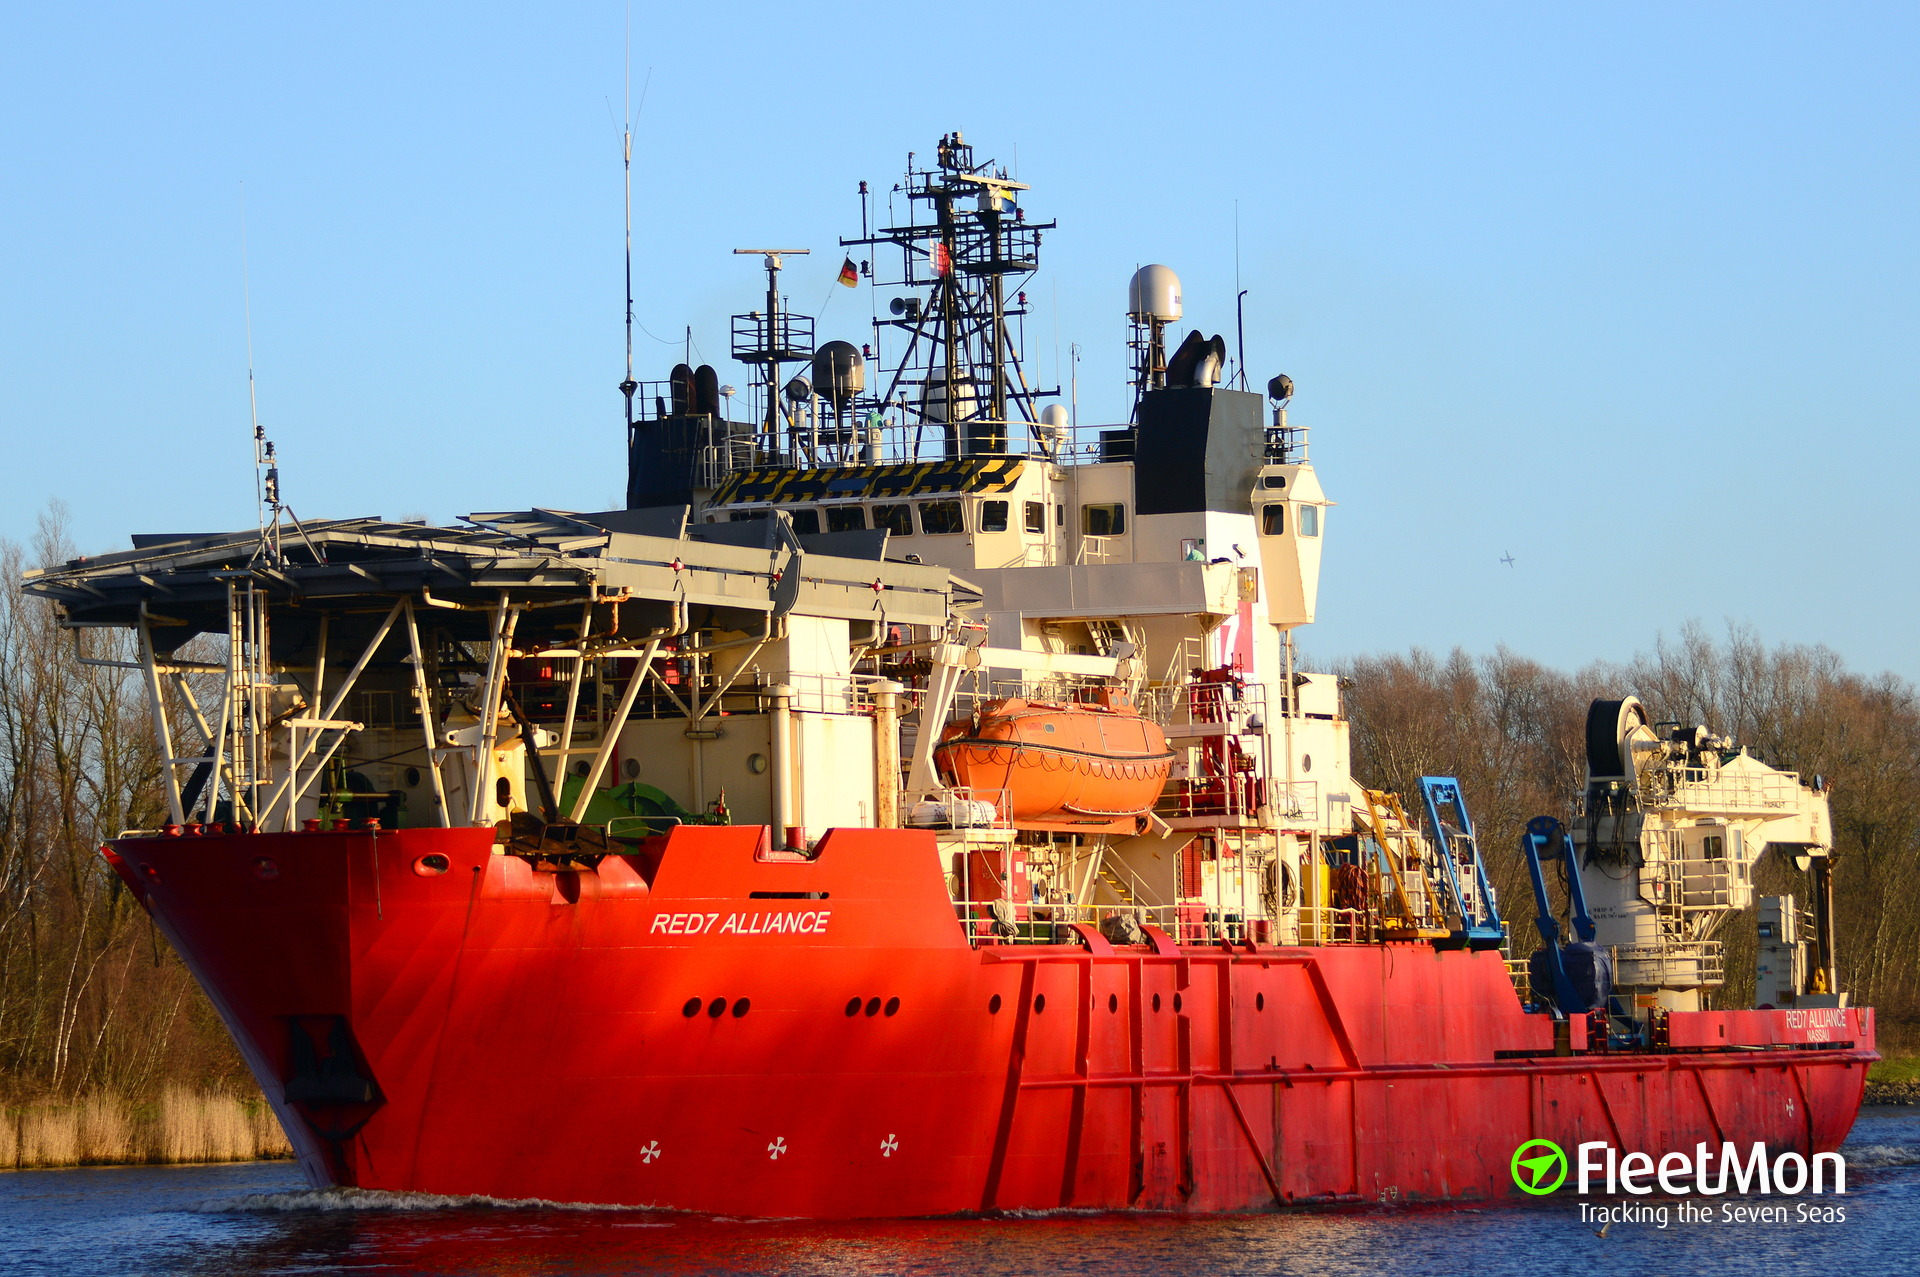 Offshore support vessel Red 7 Alliance collided with the lock's gate in Kiel Canal